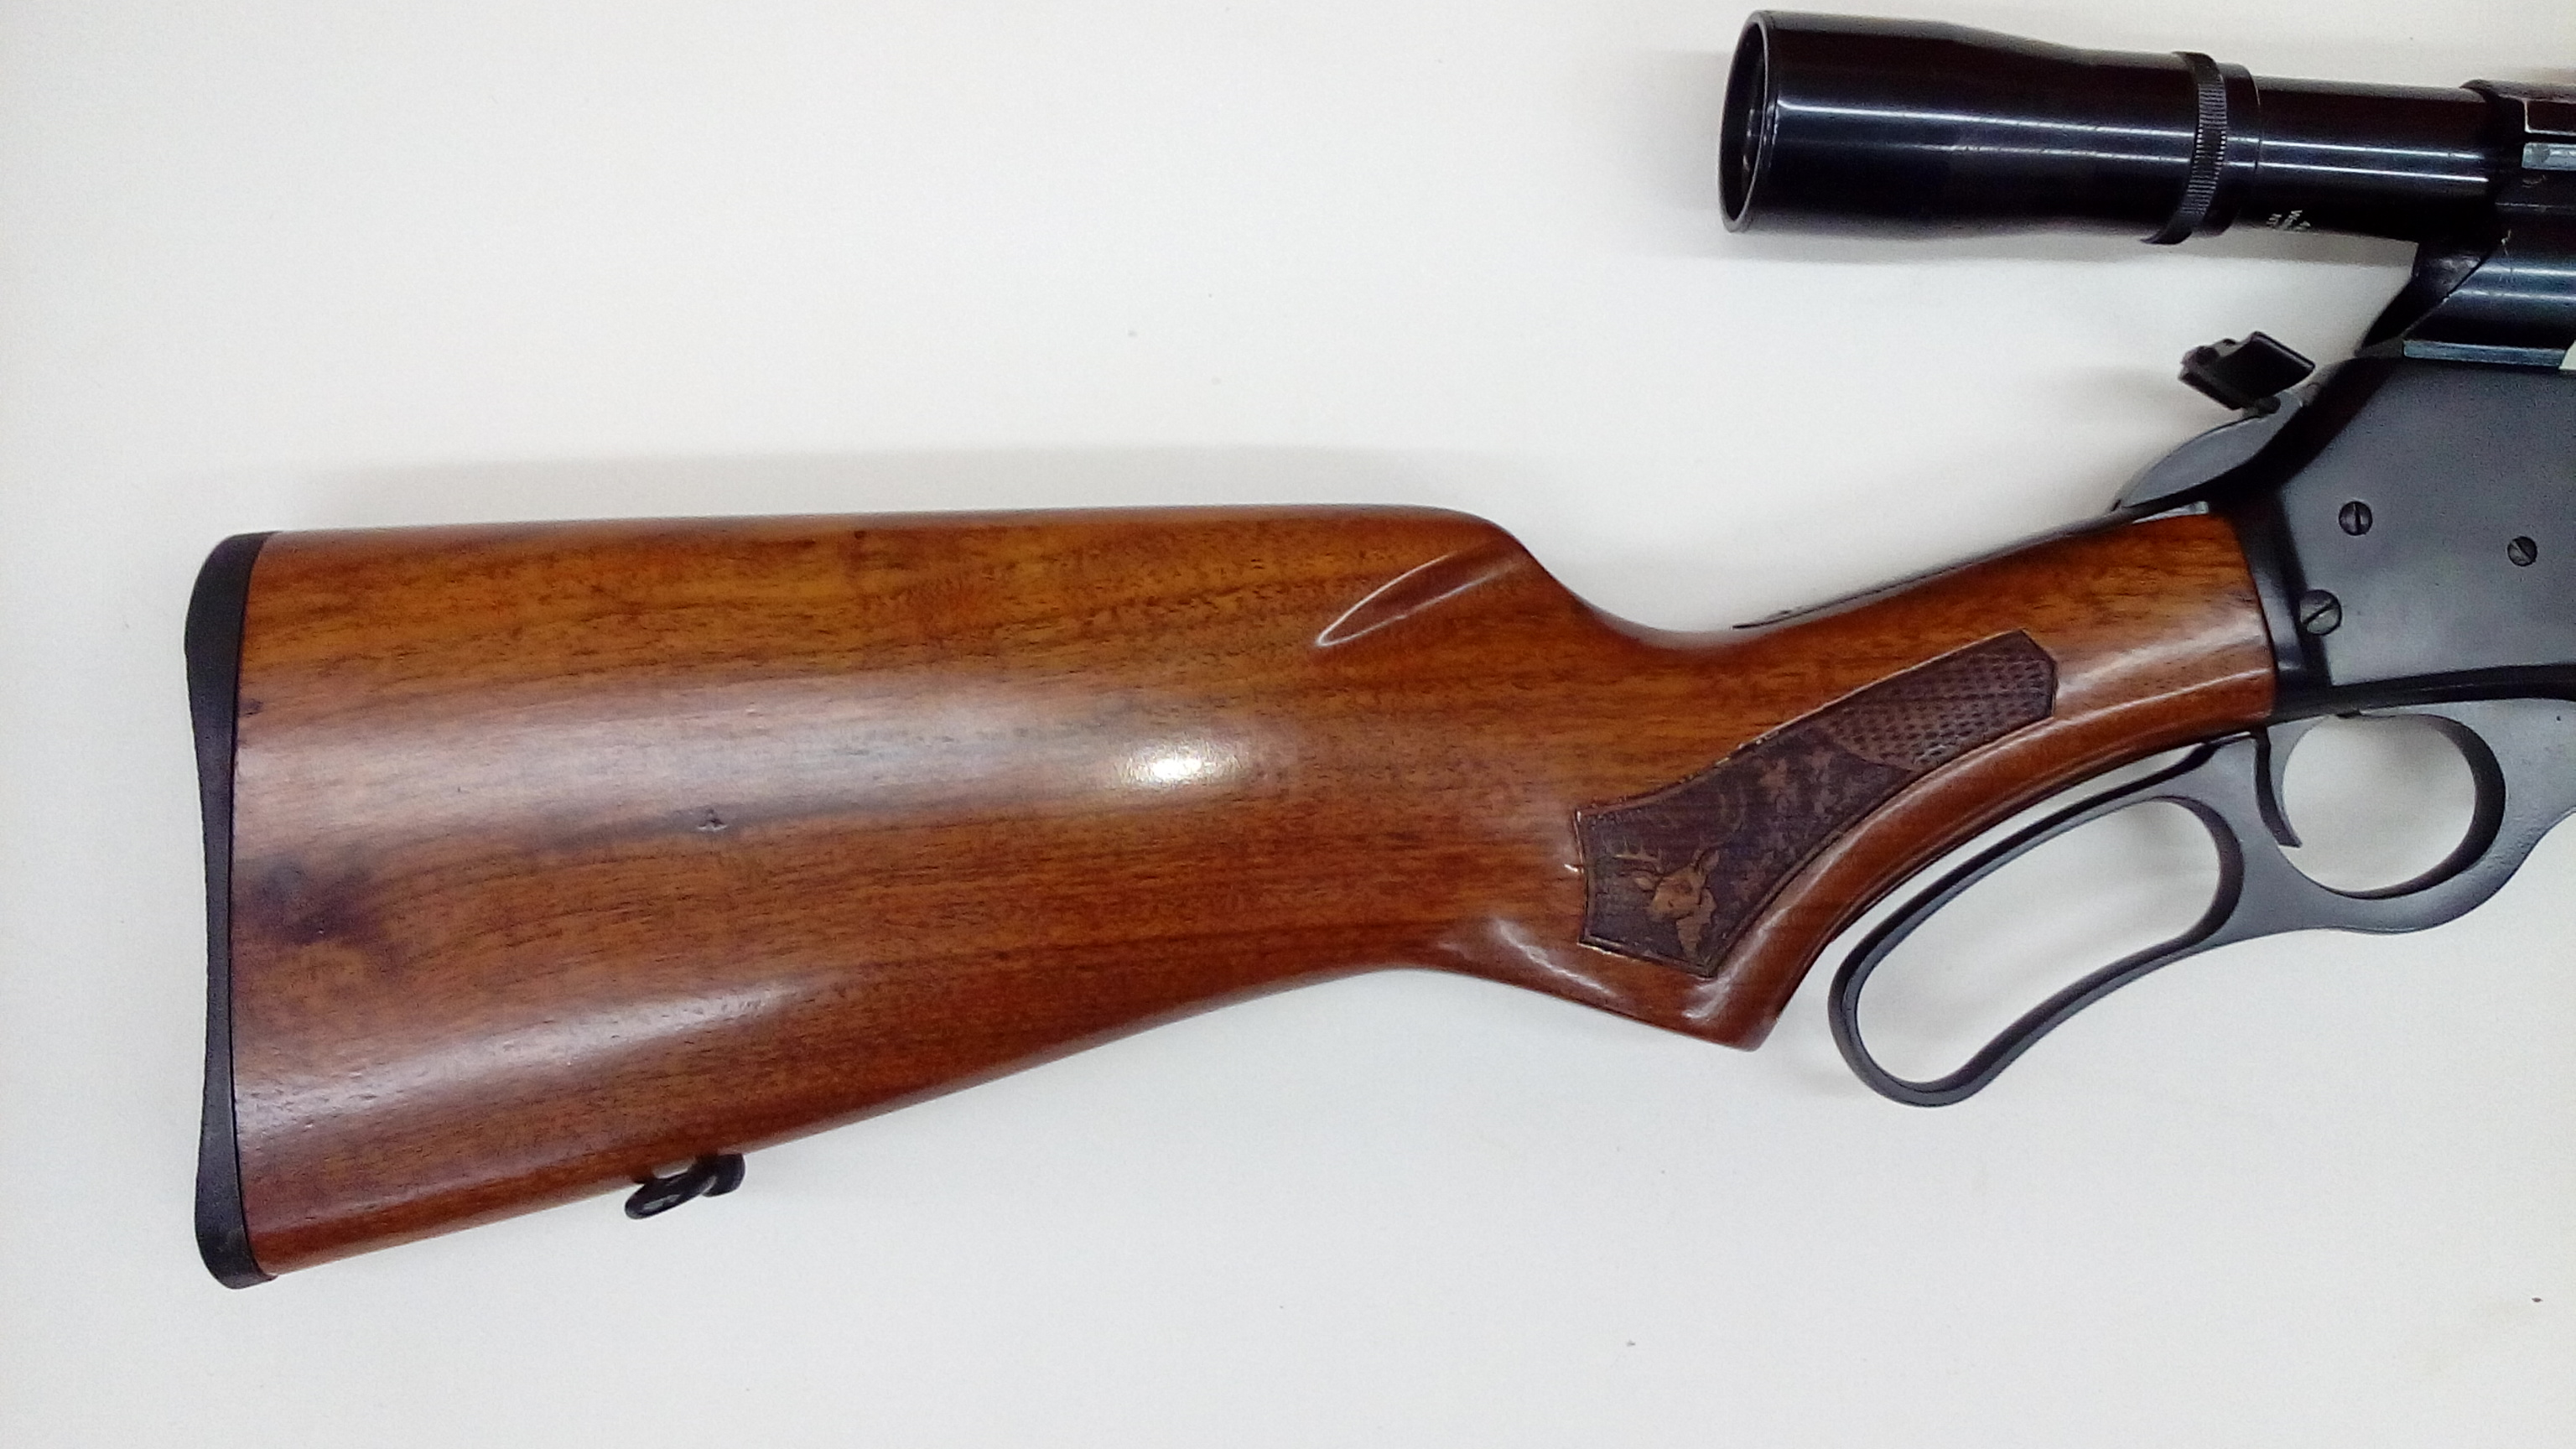 Marlin 3030 stock refinished with high gloss polyurethane, this gun was also in a fire.